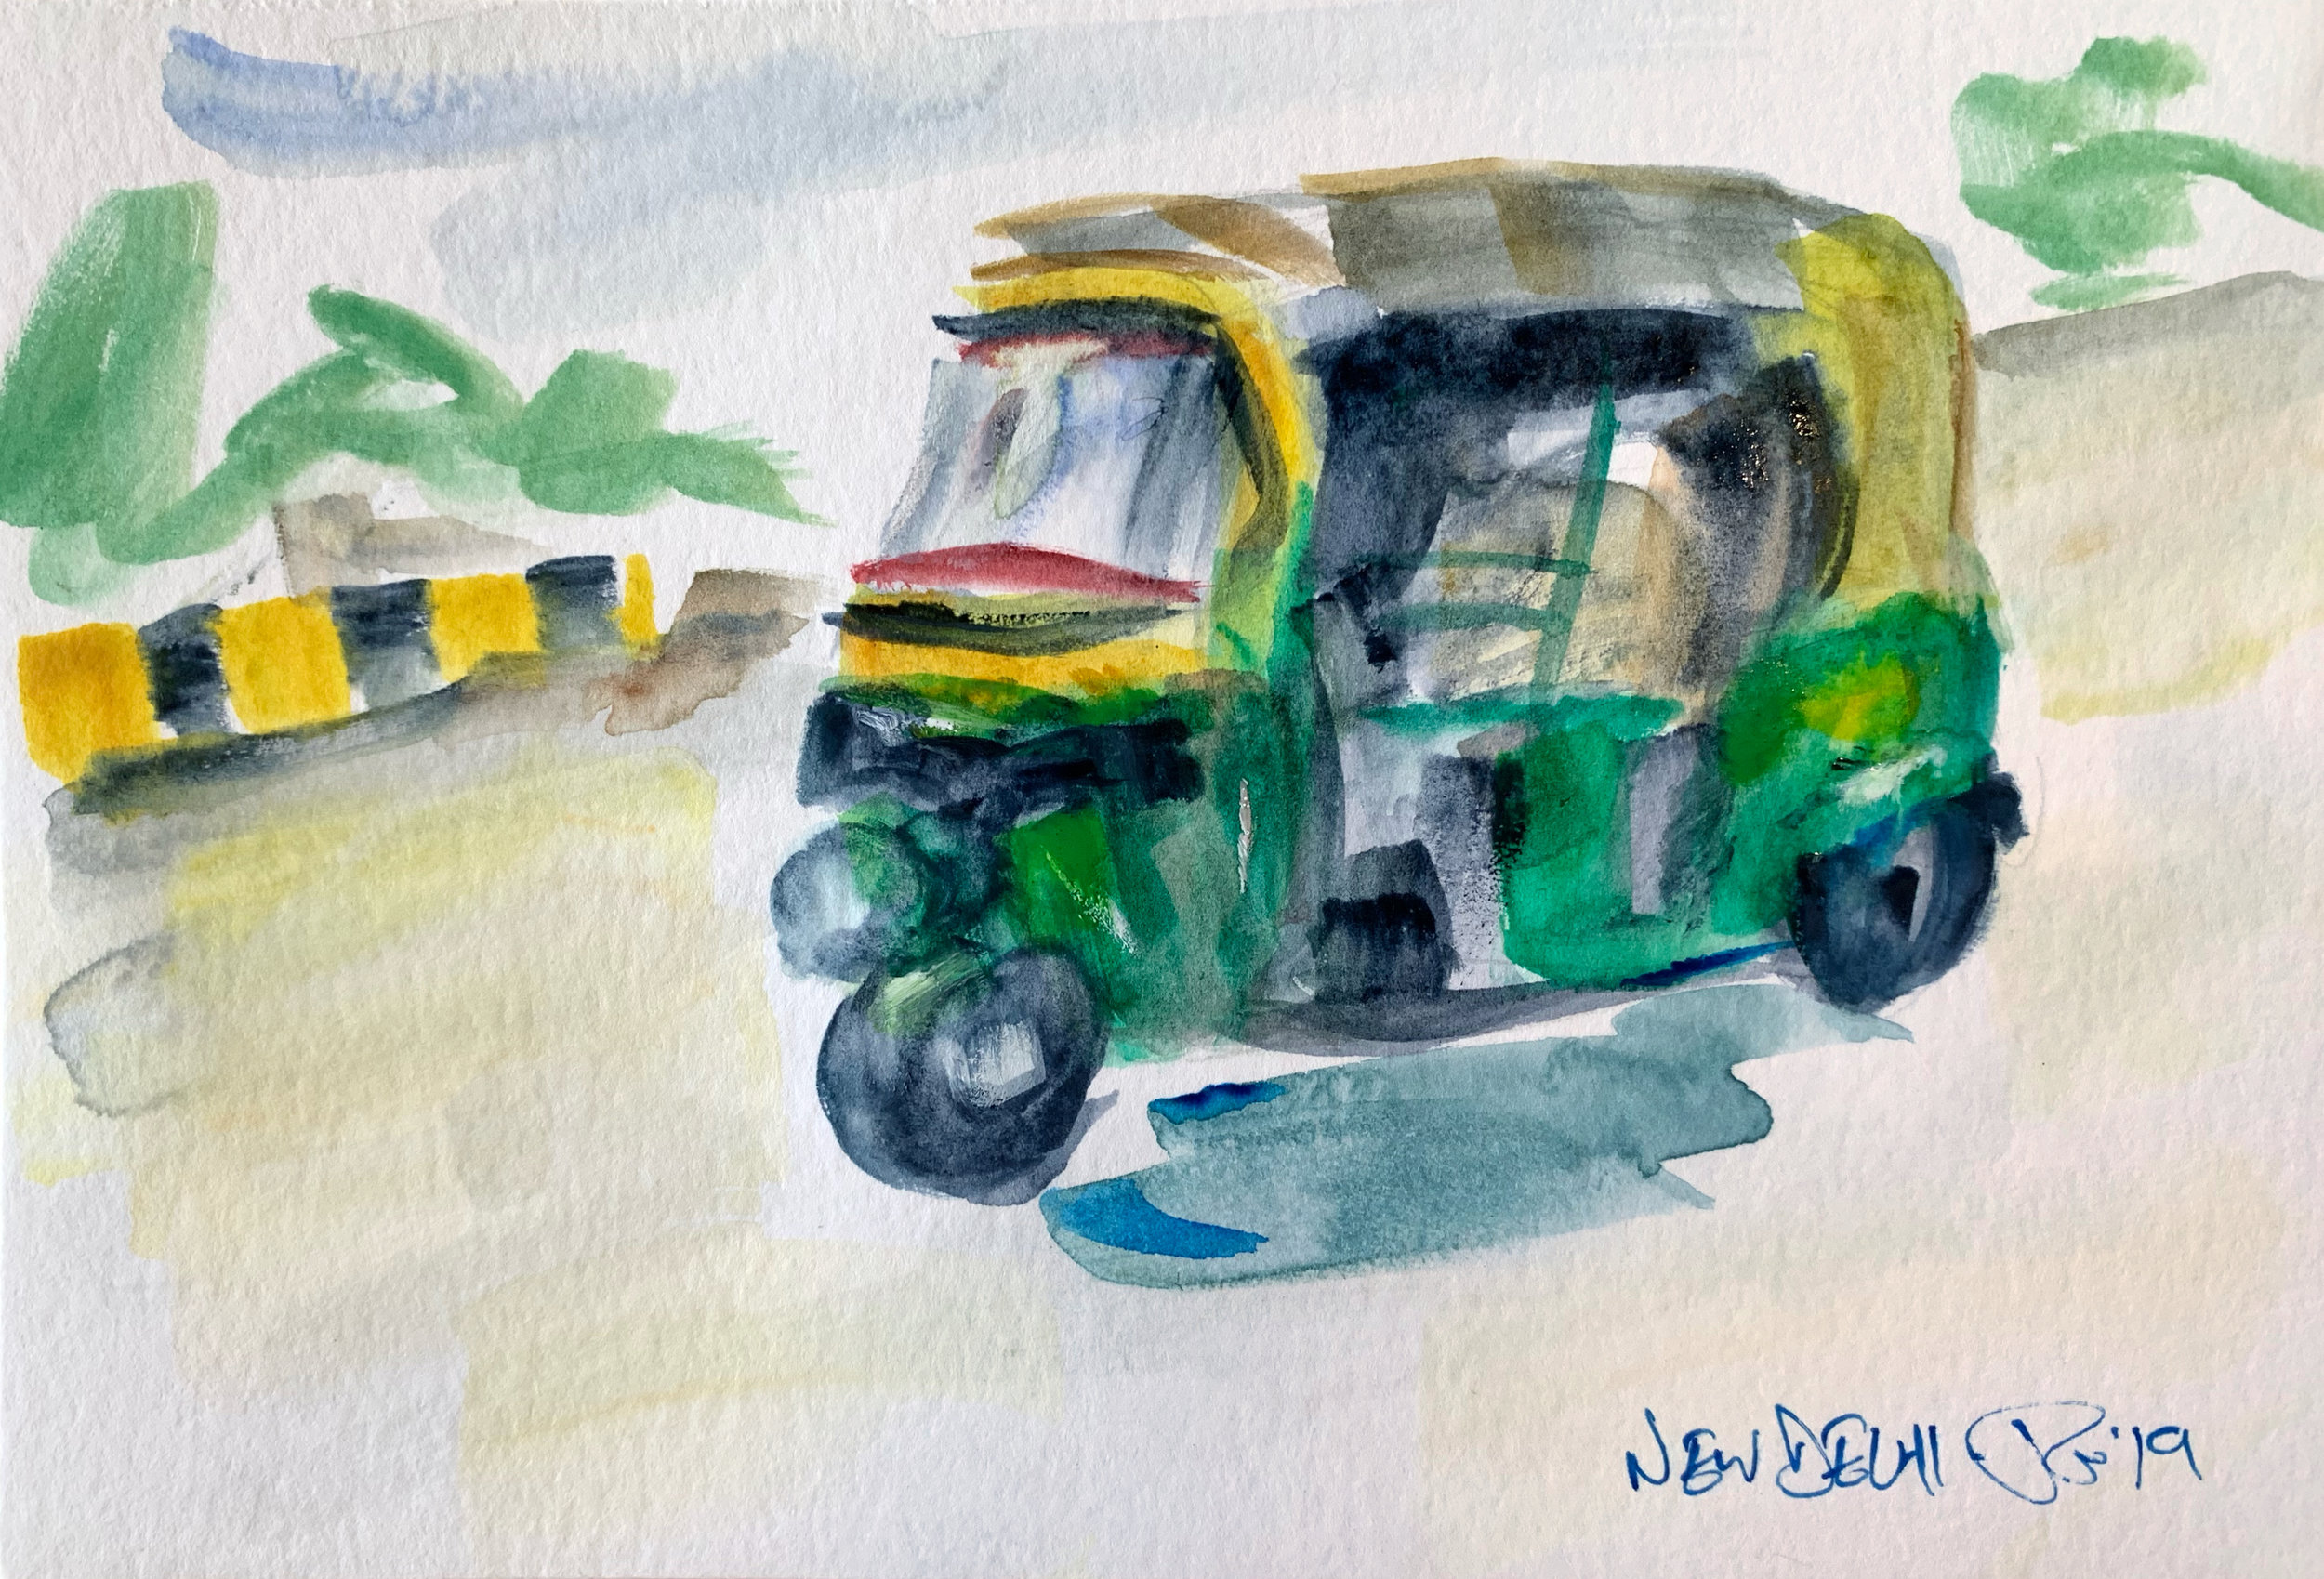 One of the ubiquitous tuktuks (auto-rickshaws) that are a fast and cheap form of transport around India's cities.